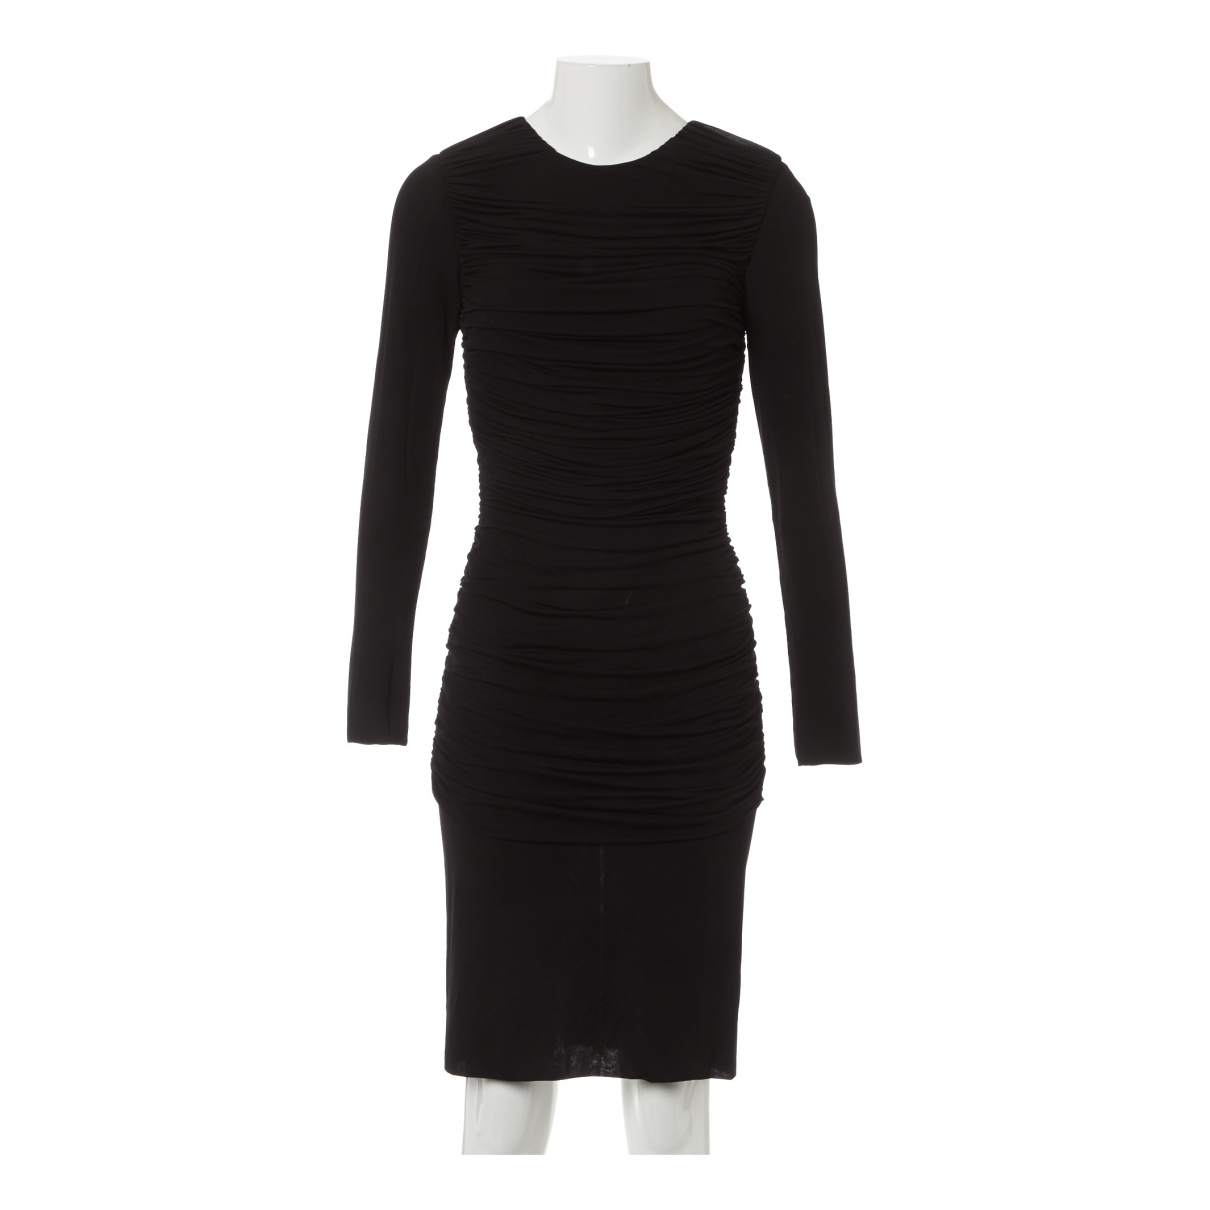 Tom Ford \N Kleid in  Schwarz Viskose